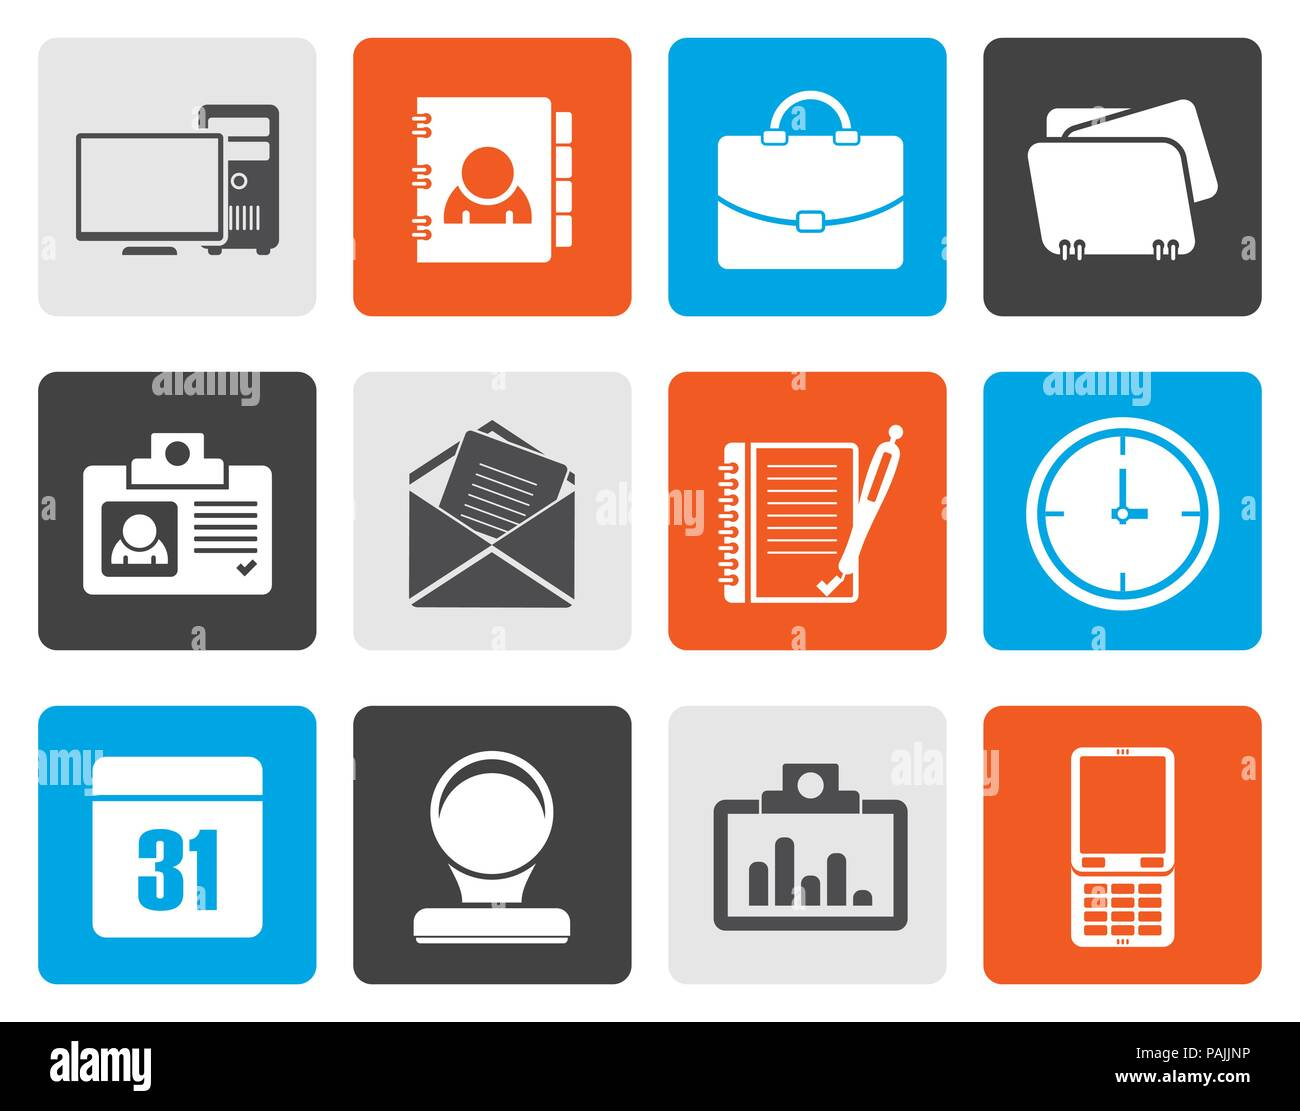 Flat Web Applications,Business and Office icons, Universal icons - vector icon set - Stock Image